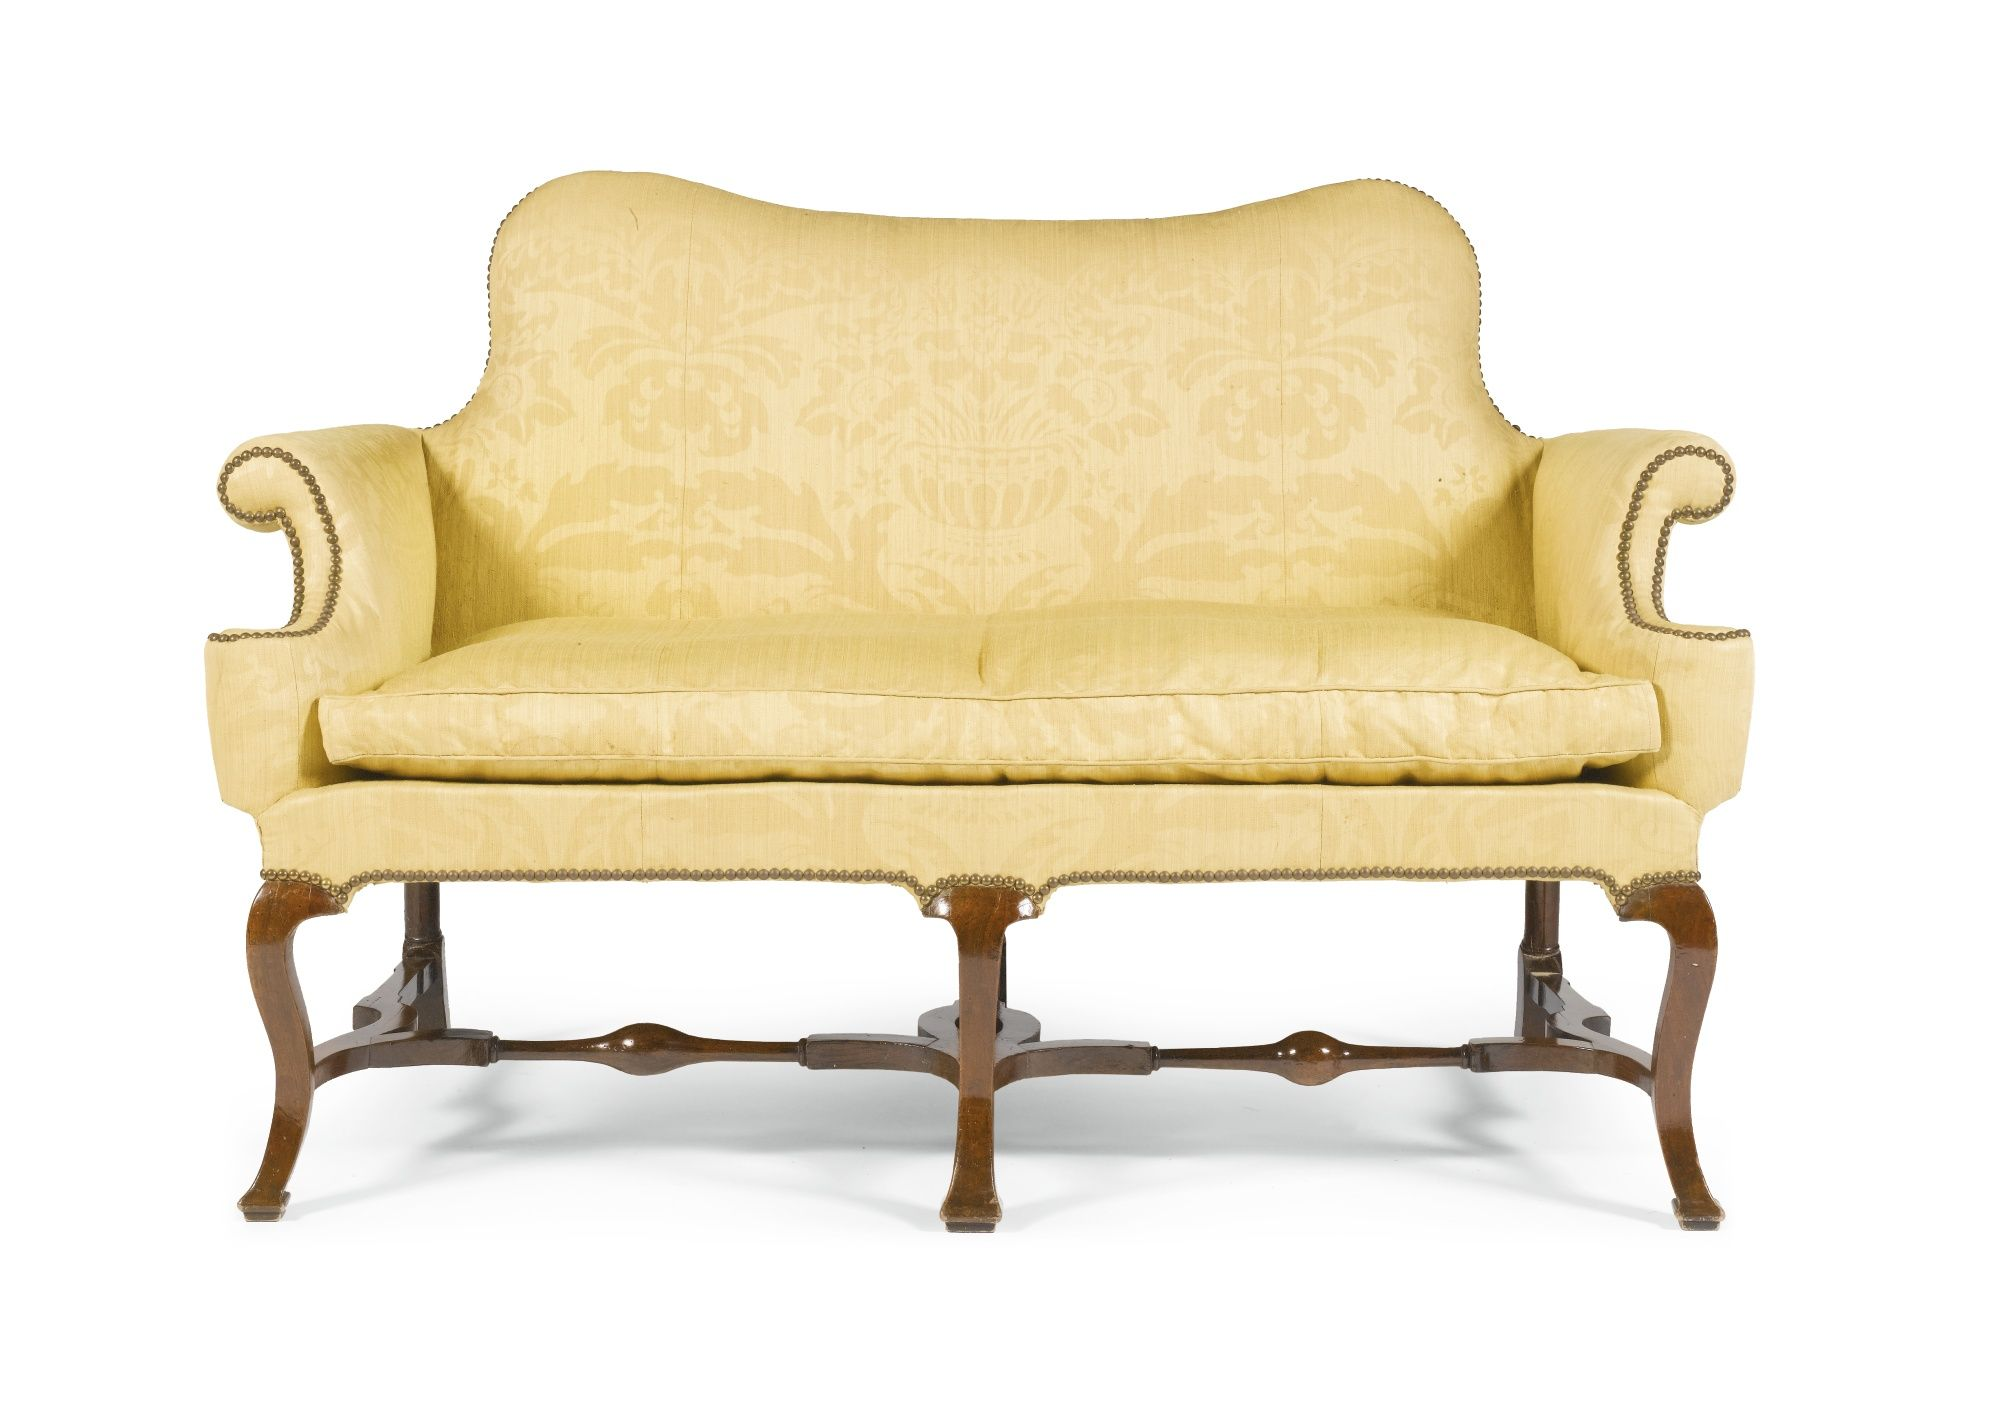 A Queen Anne Walnut Sofa Circa 1710 The Shaped Back With Outscrolled Arm Supports On Cabriole